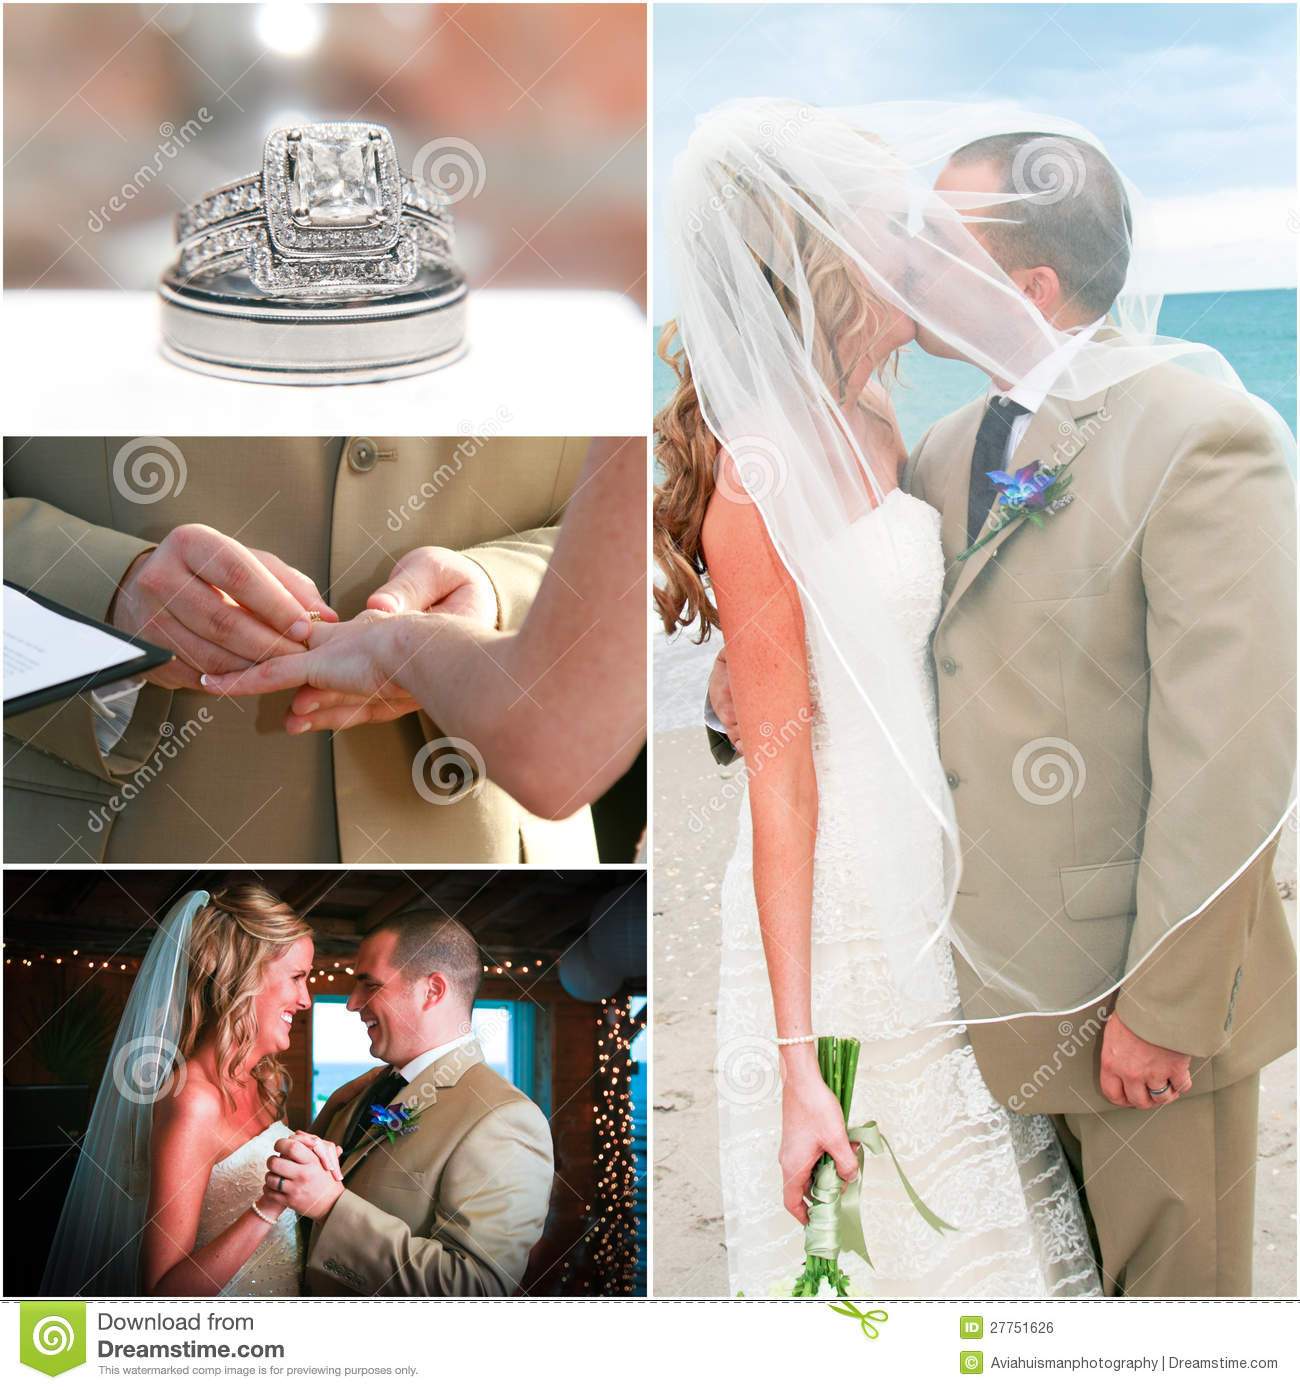 Beach Wedding Collage Royalty Free Stock Image - Image: 27751626